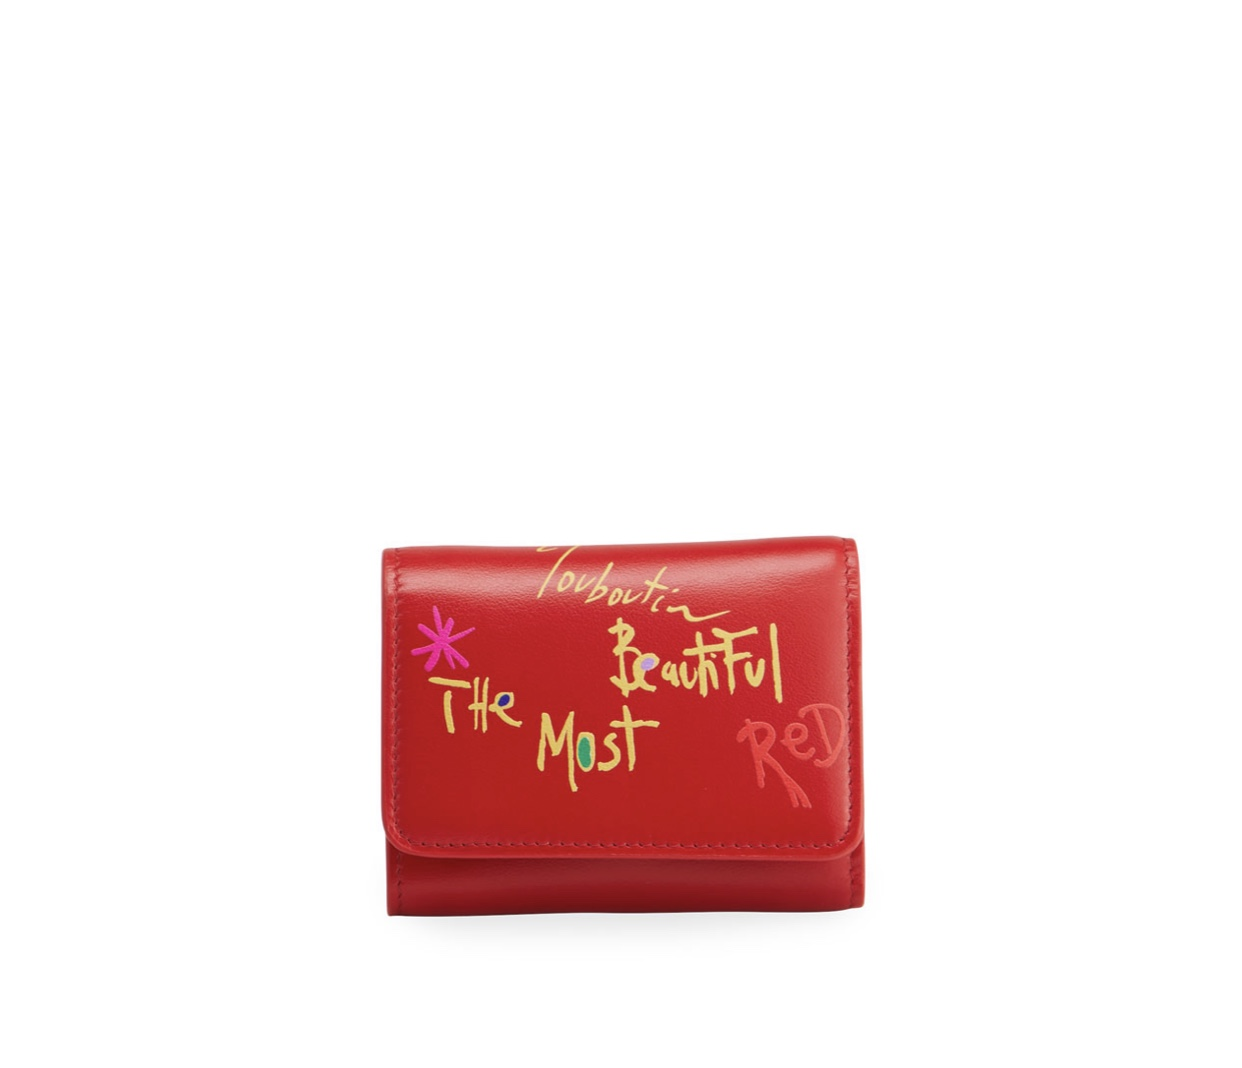 CHRISTIAN LOUBOUTIN Loubigaga Mini The Most Beautiful Red Wallet